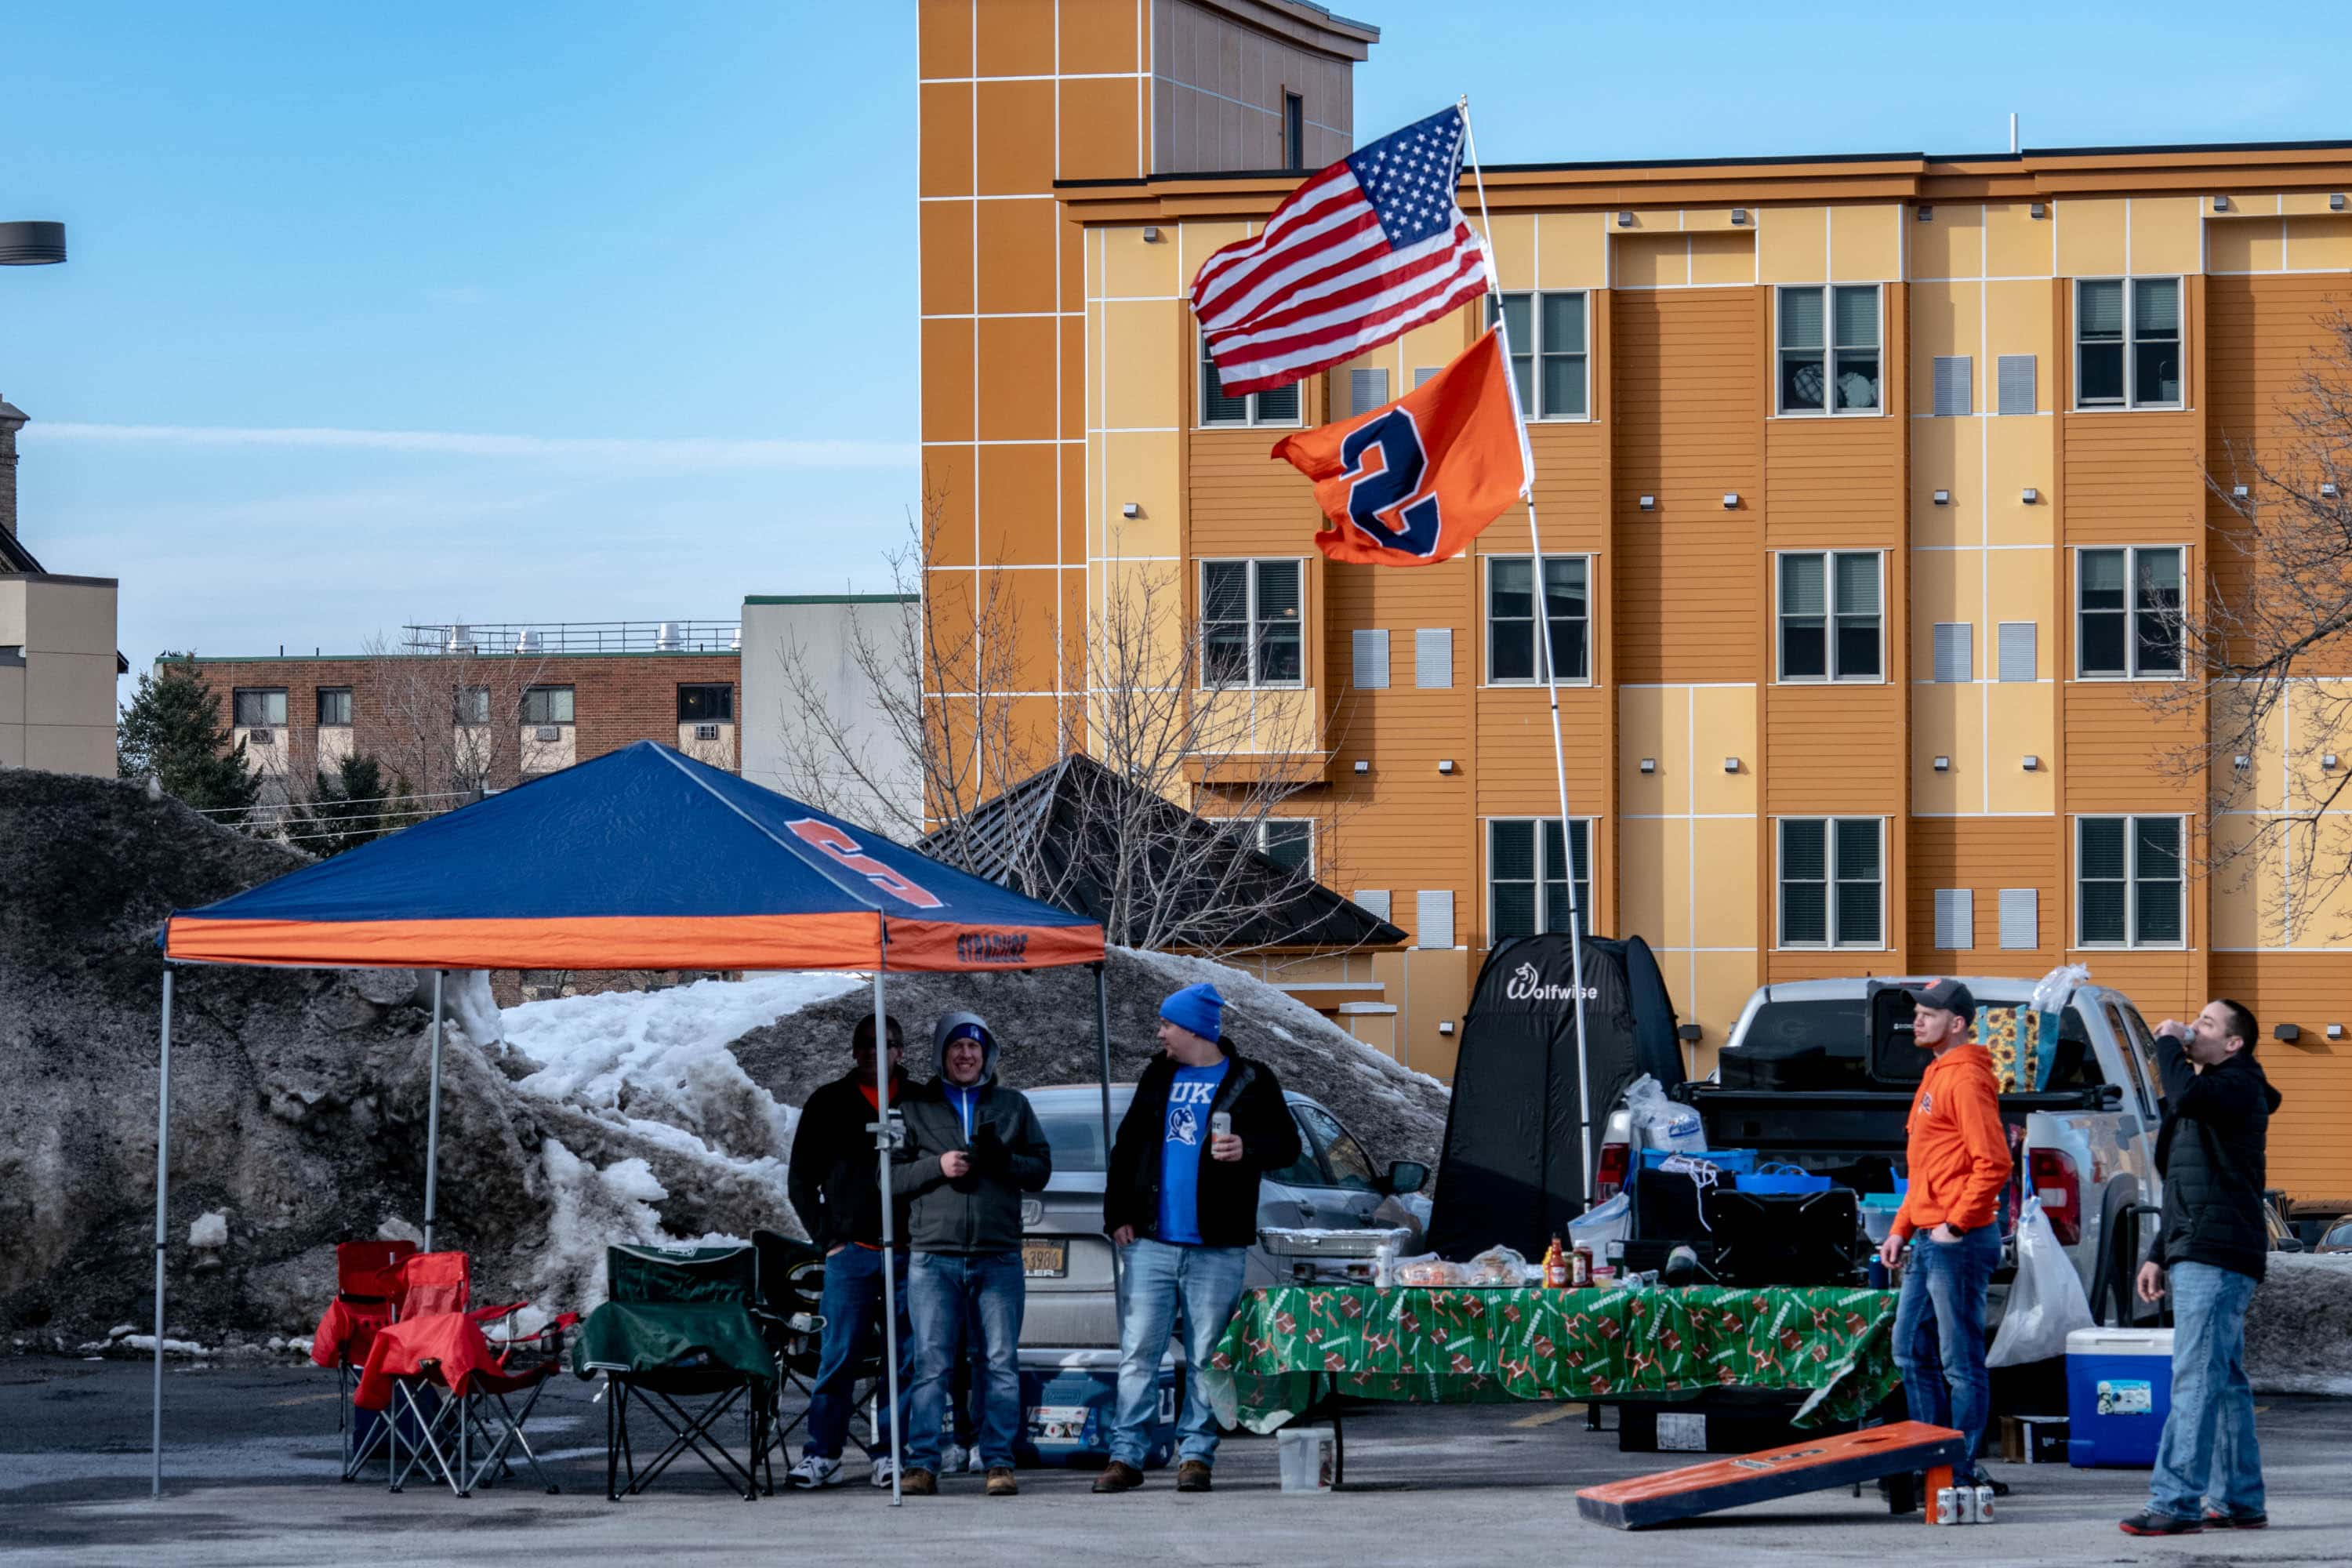 Syracuse and Duke's fierce rivalry and mild winter weather brought fans together for tailgate along East Adams Street prior to the game.